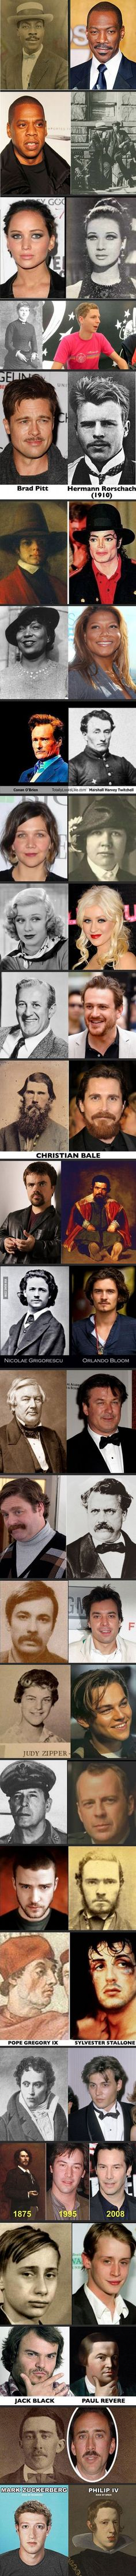 Celebrity Reincarnations?? much more celebrities Lookalikes! Amazing!! #lookalike via @9GAG #famous #look-alike